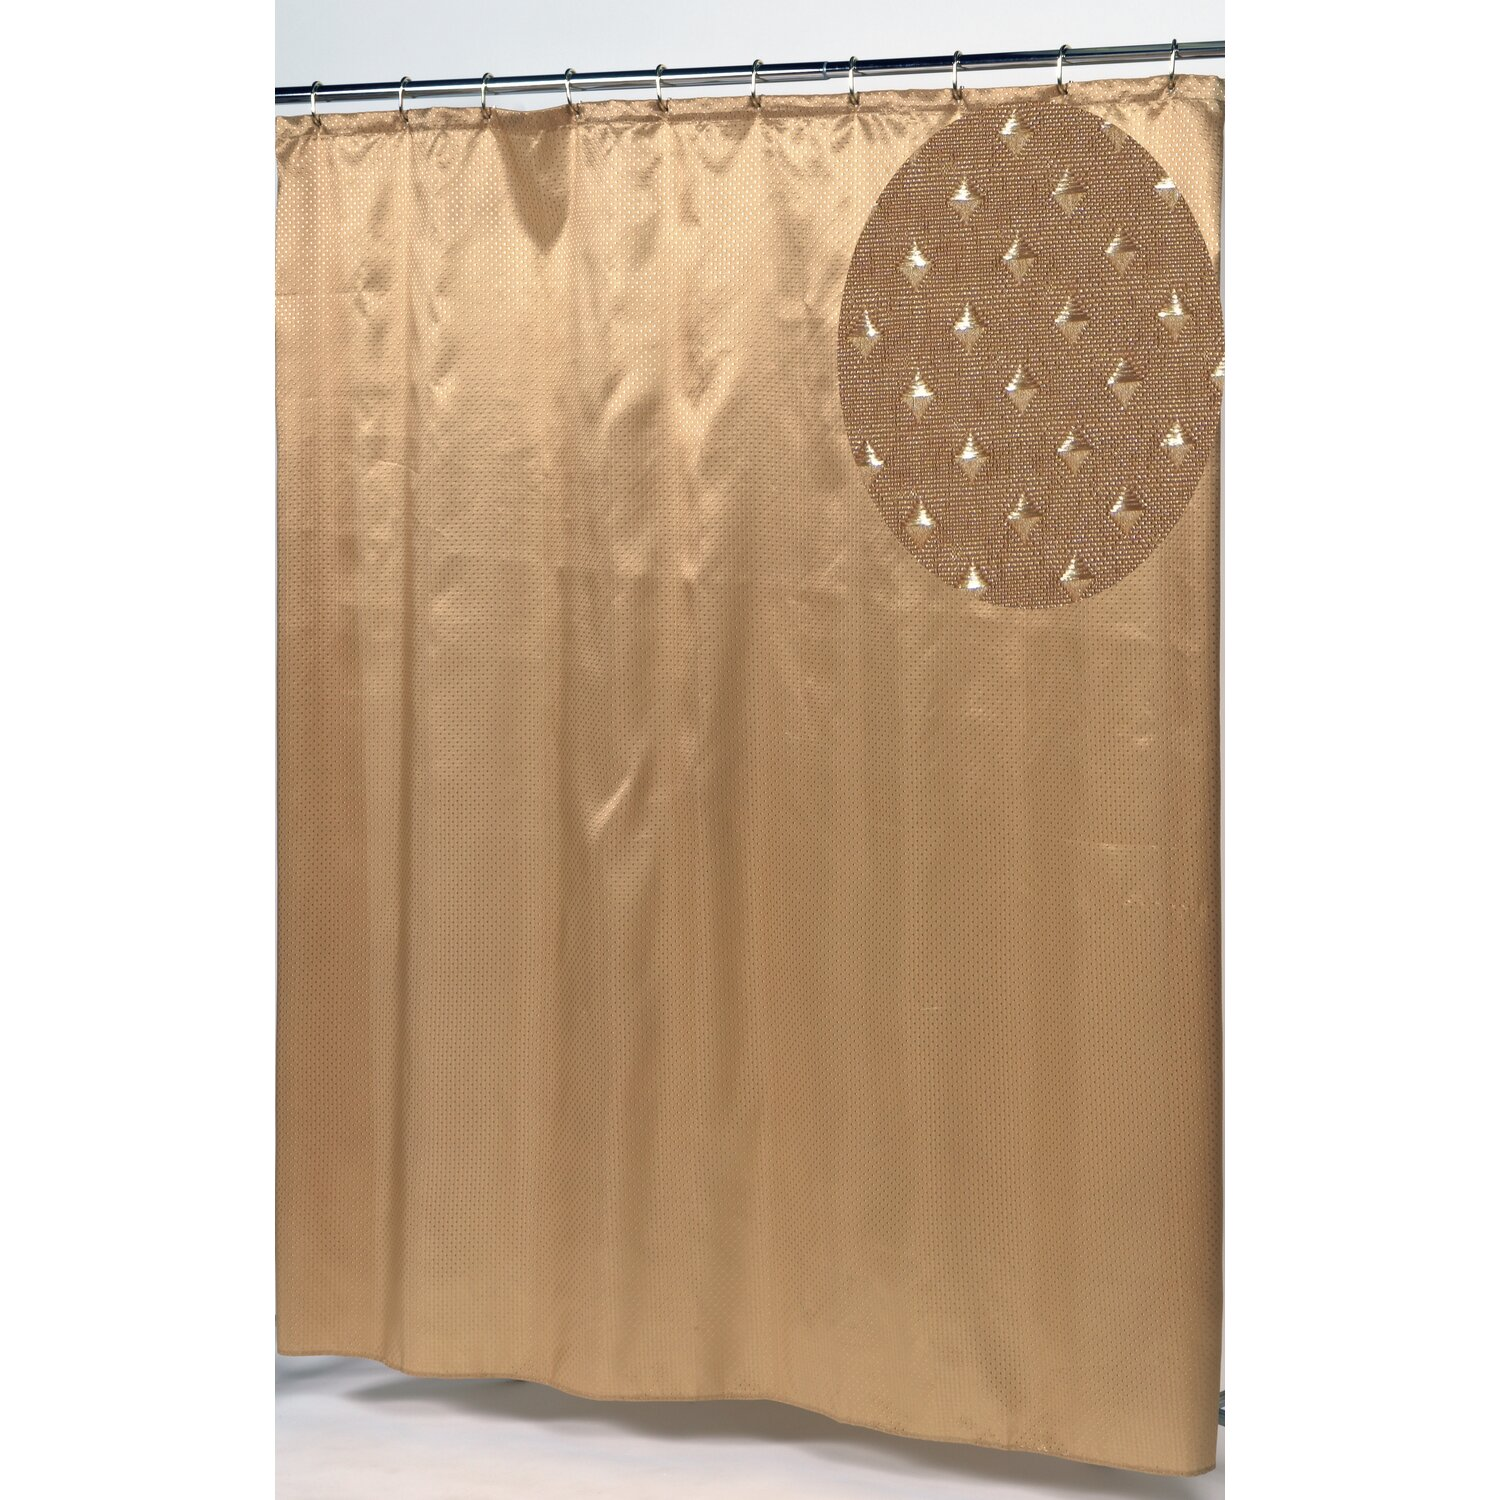 Carnation Home Fashions Fabric Shower Curtain Carnation Home Fashions Lauren